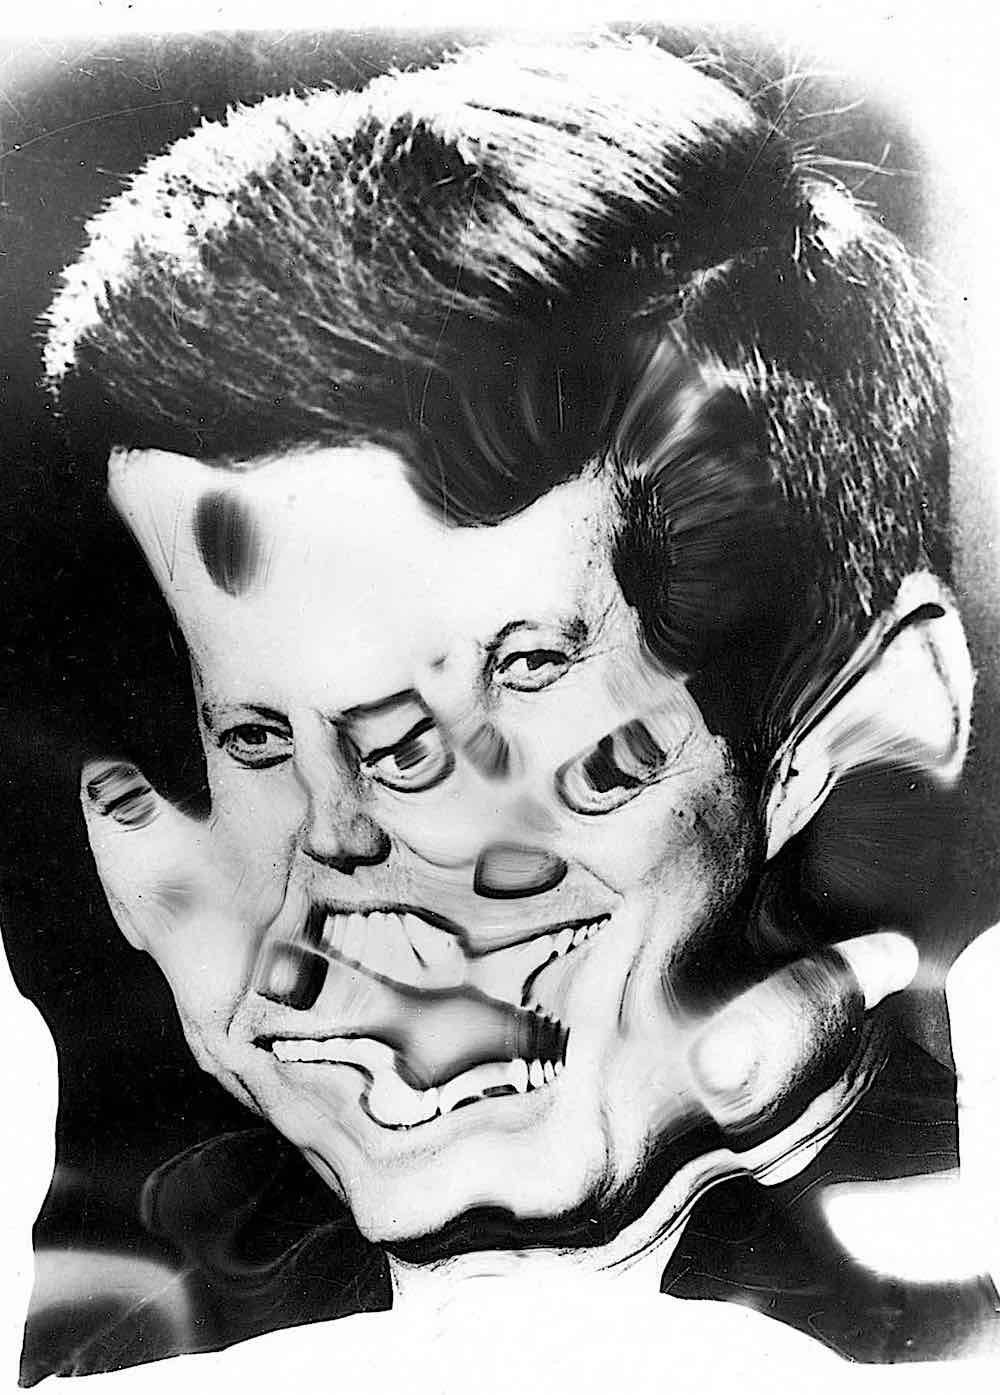 an old distorted photograph of John F. Kennedy by Wee Gee